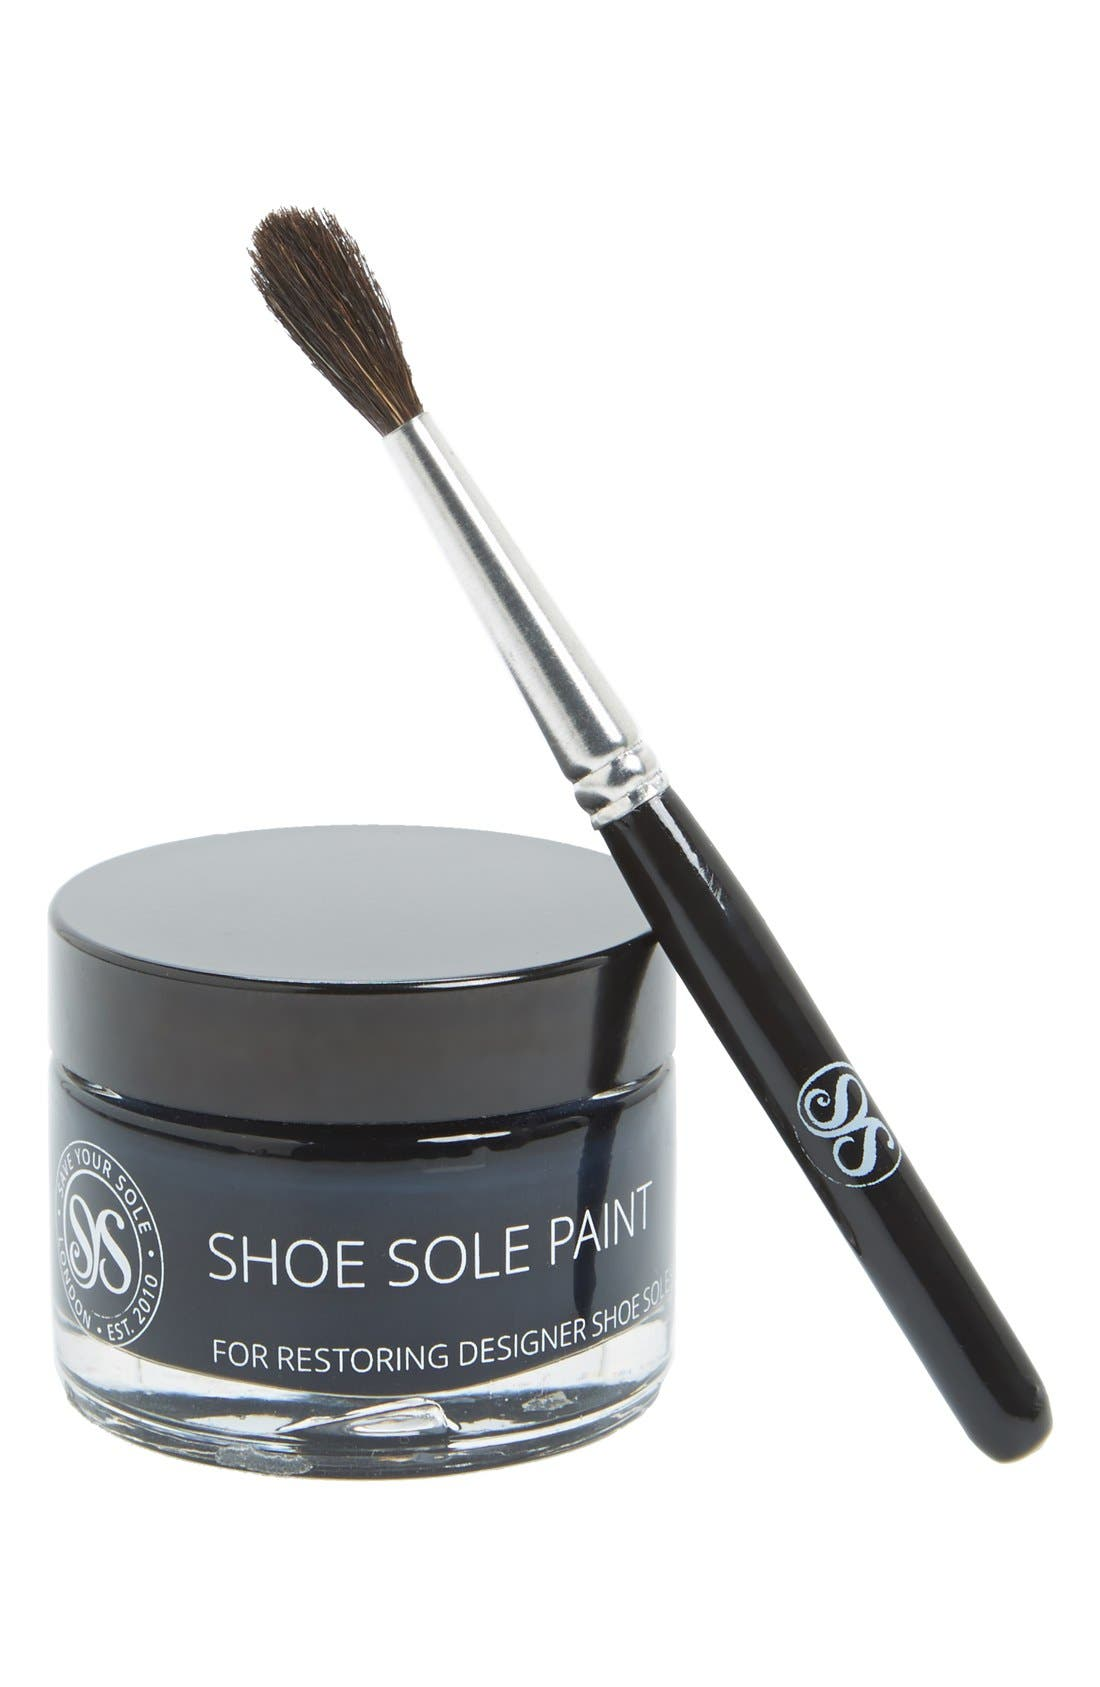 Alternate Image 1 Selected - Save Your Sole Sole Repair Paint Kit